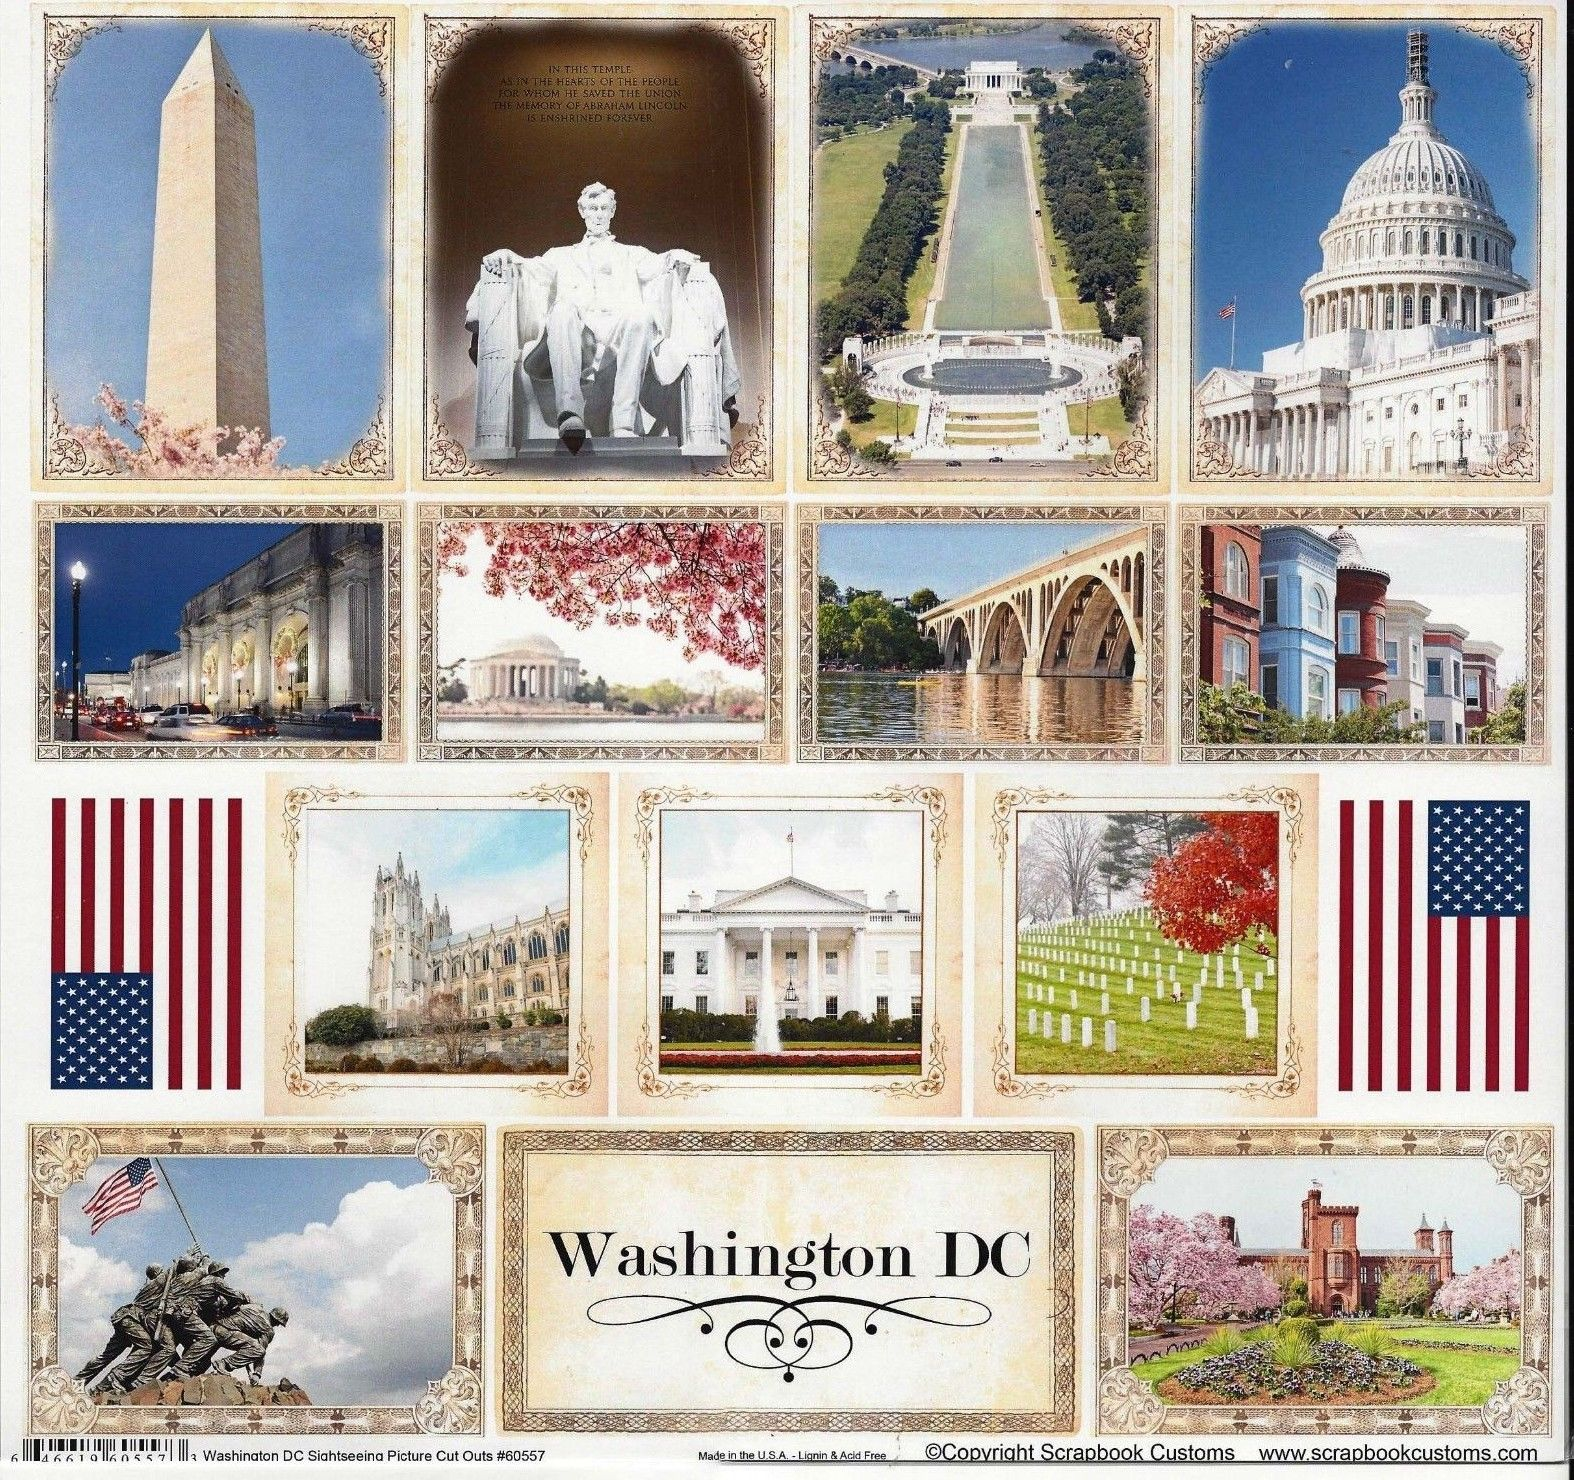 Scrapbook Customs- Washington DC Picture Cut Outs